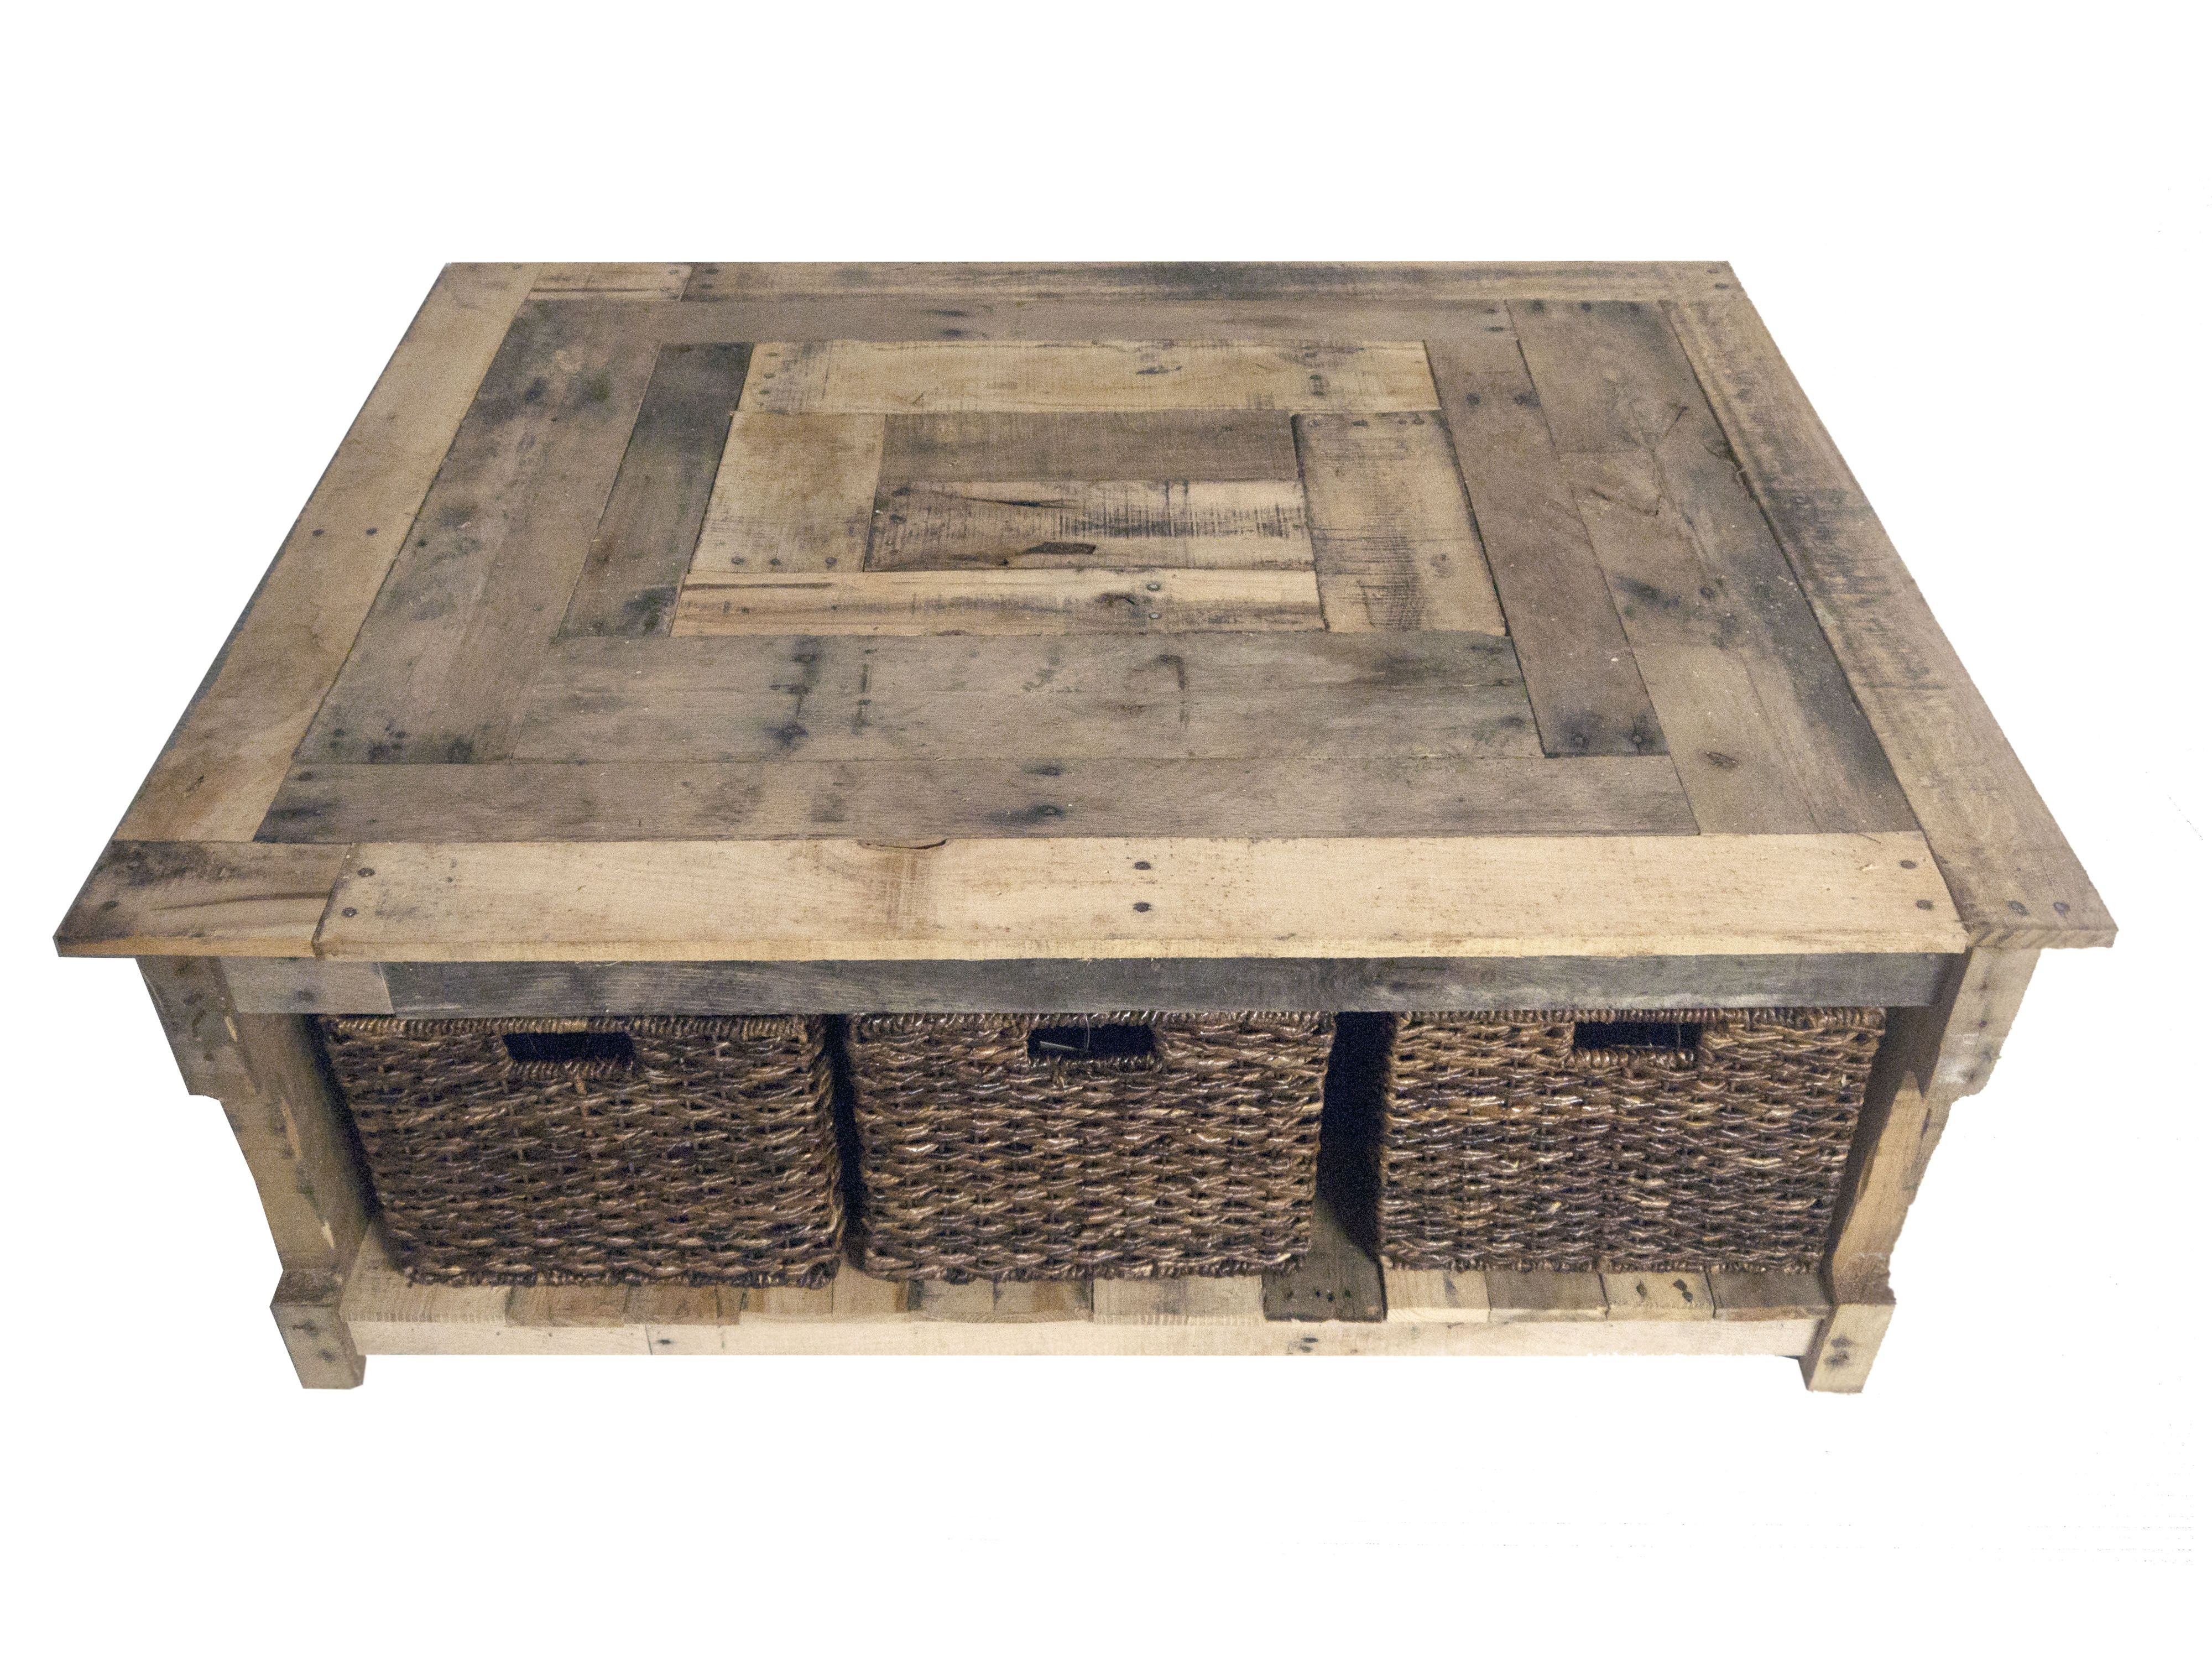 Diy Rustic Custom Pallet Coffee Table Bees Furniture Made From Recycled Pallets For Wicker